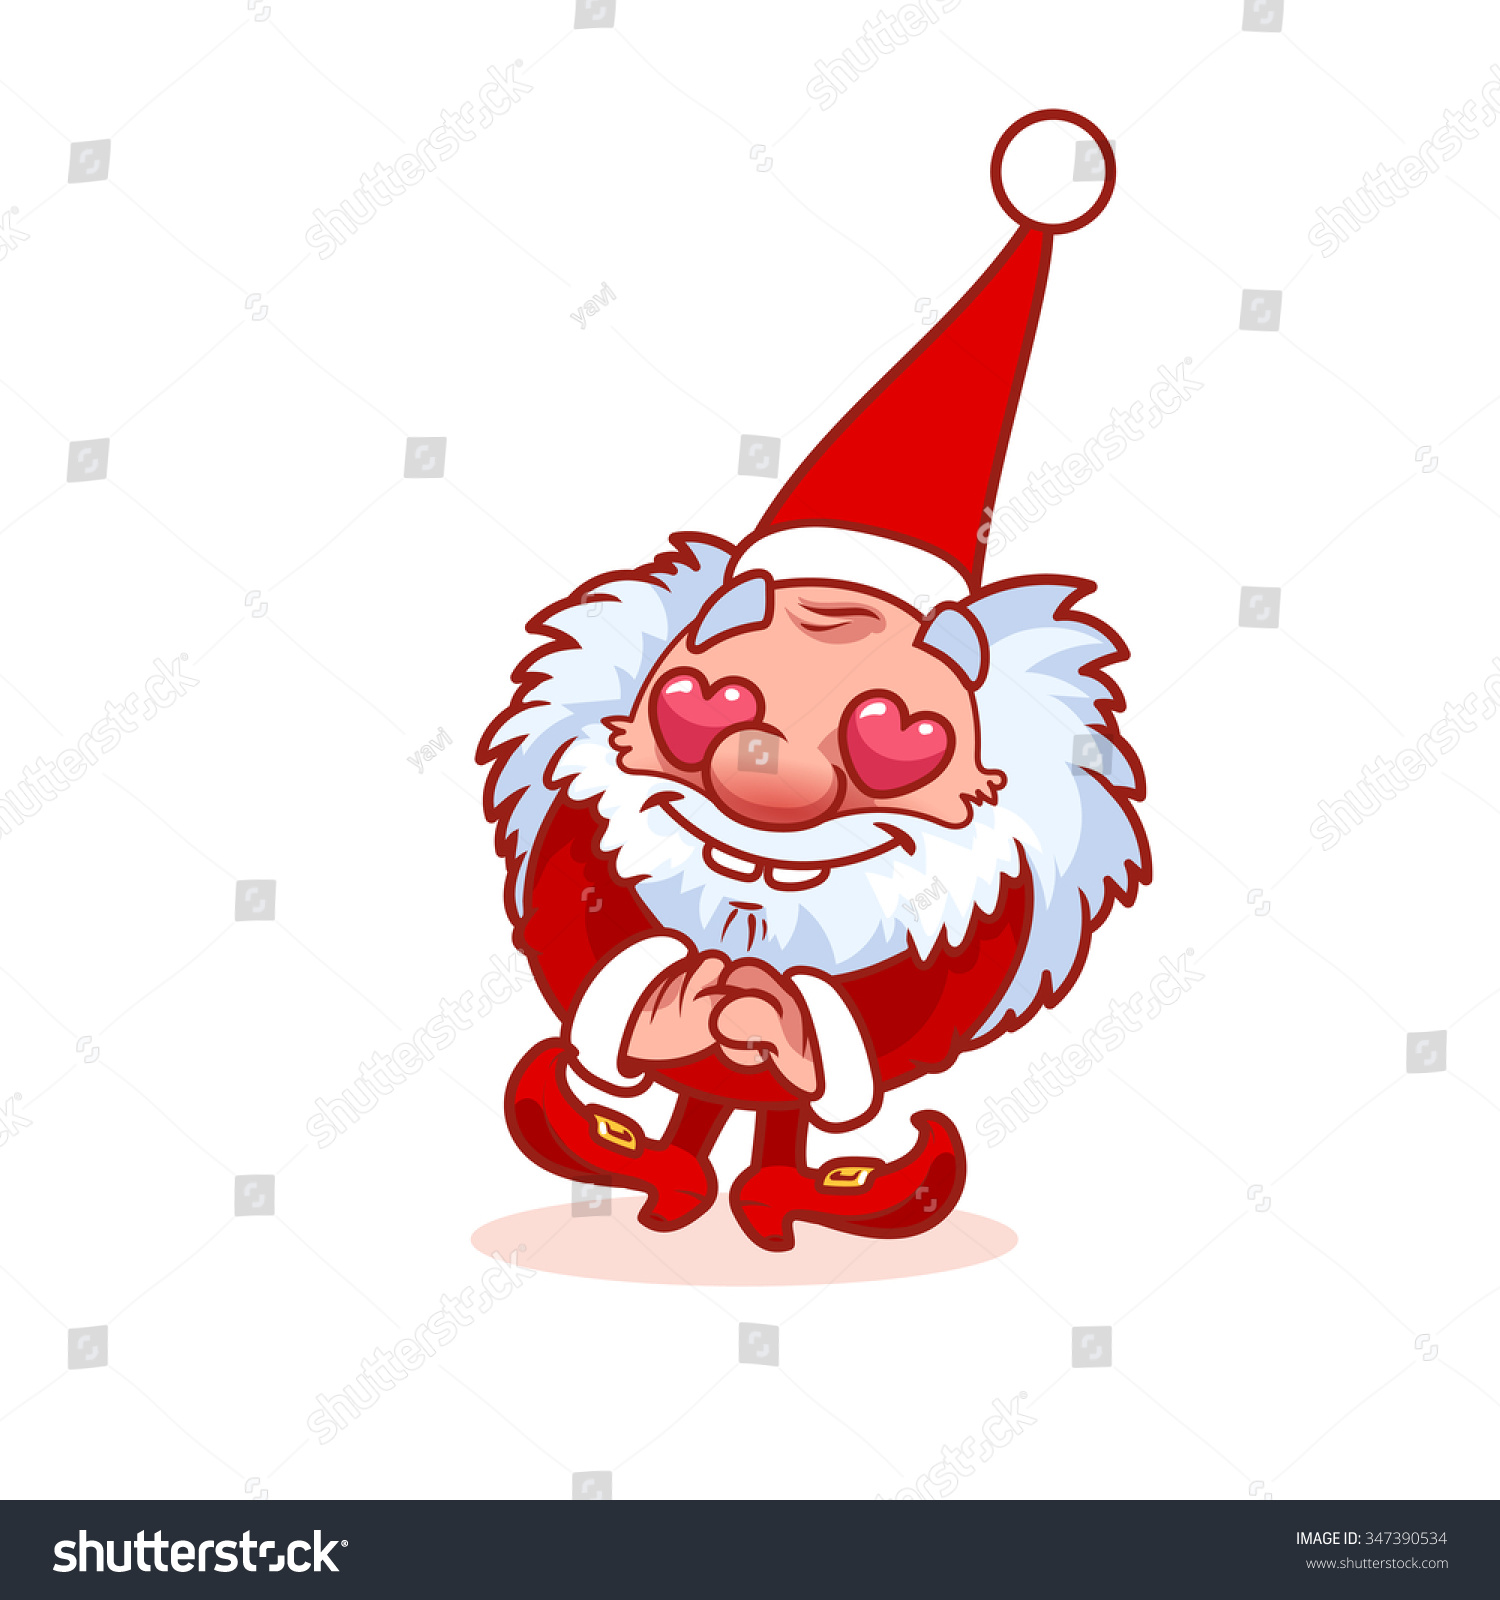 Enamored christmas gnome red costume hearts stock vector